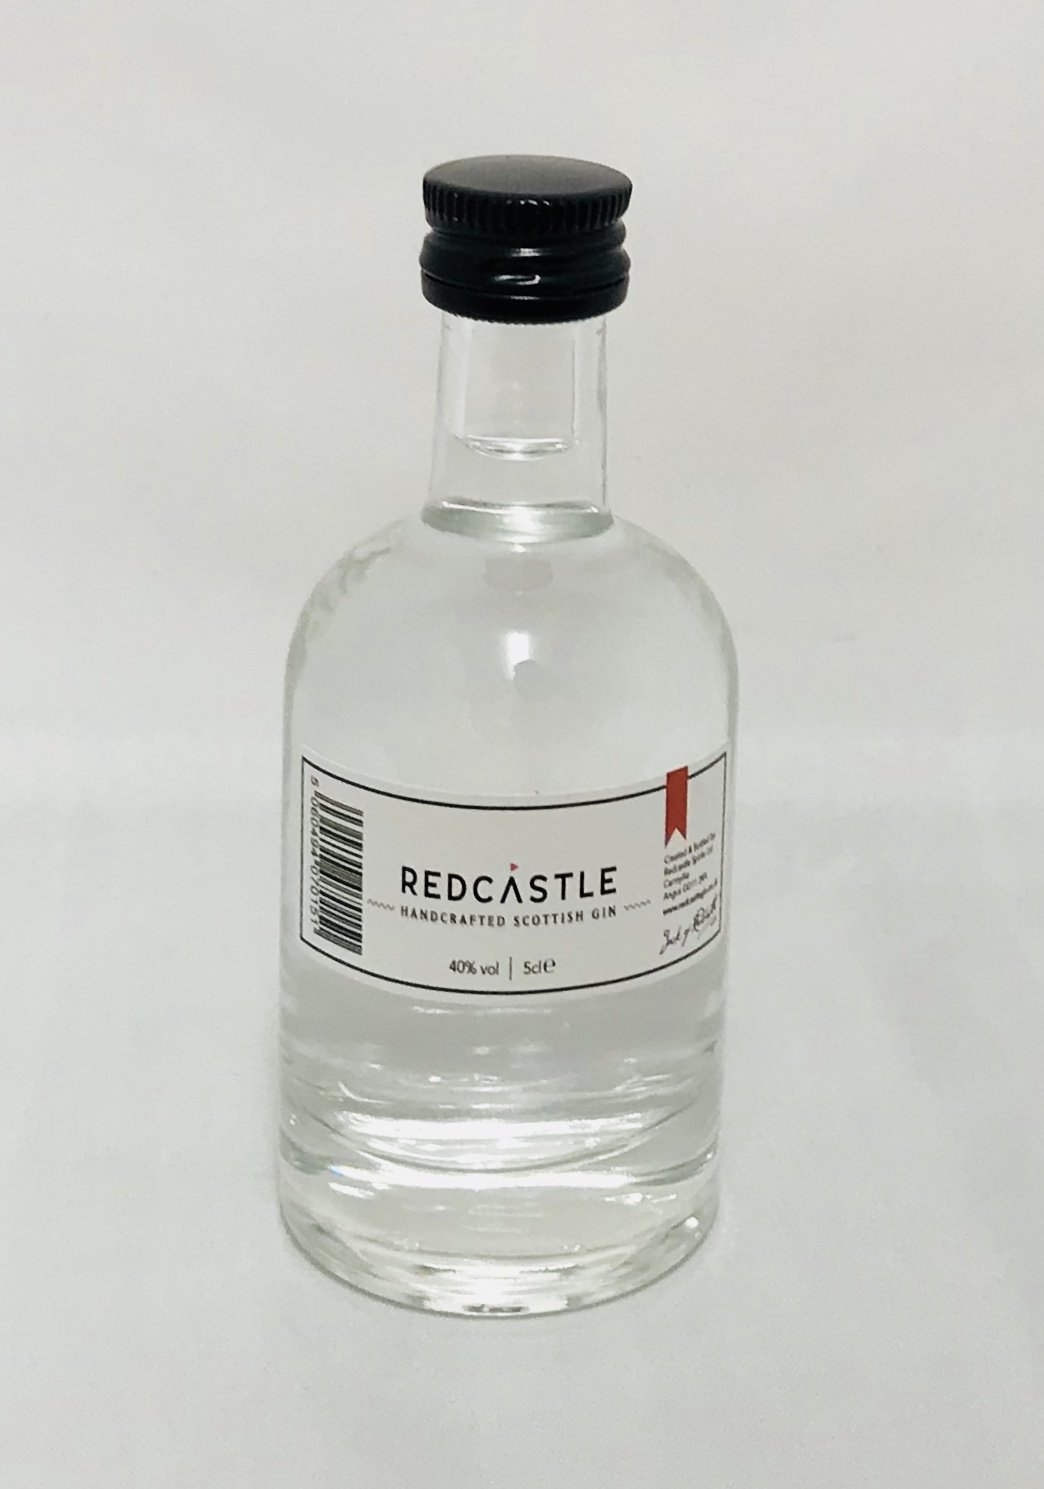 Redcastle Scottish Gin Gins & Gin Liqueurs